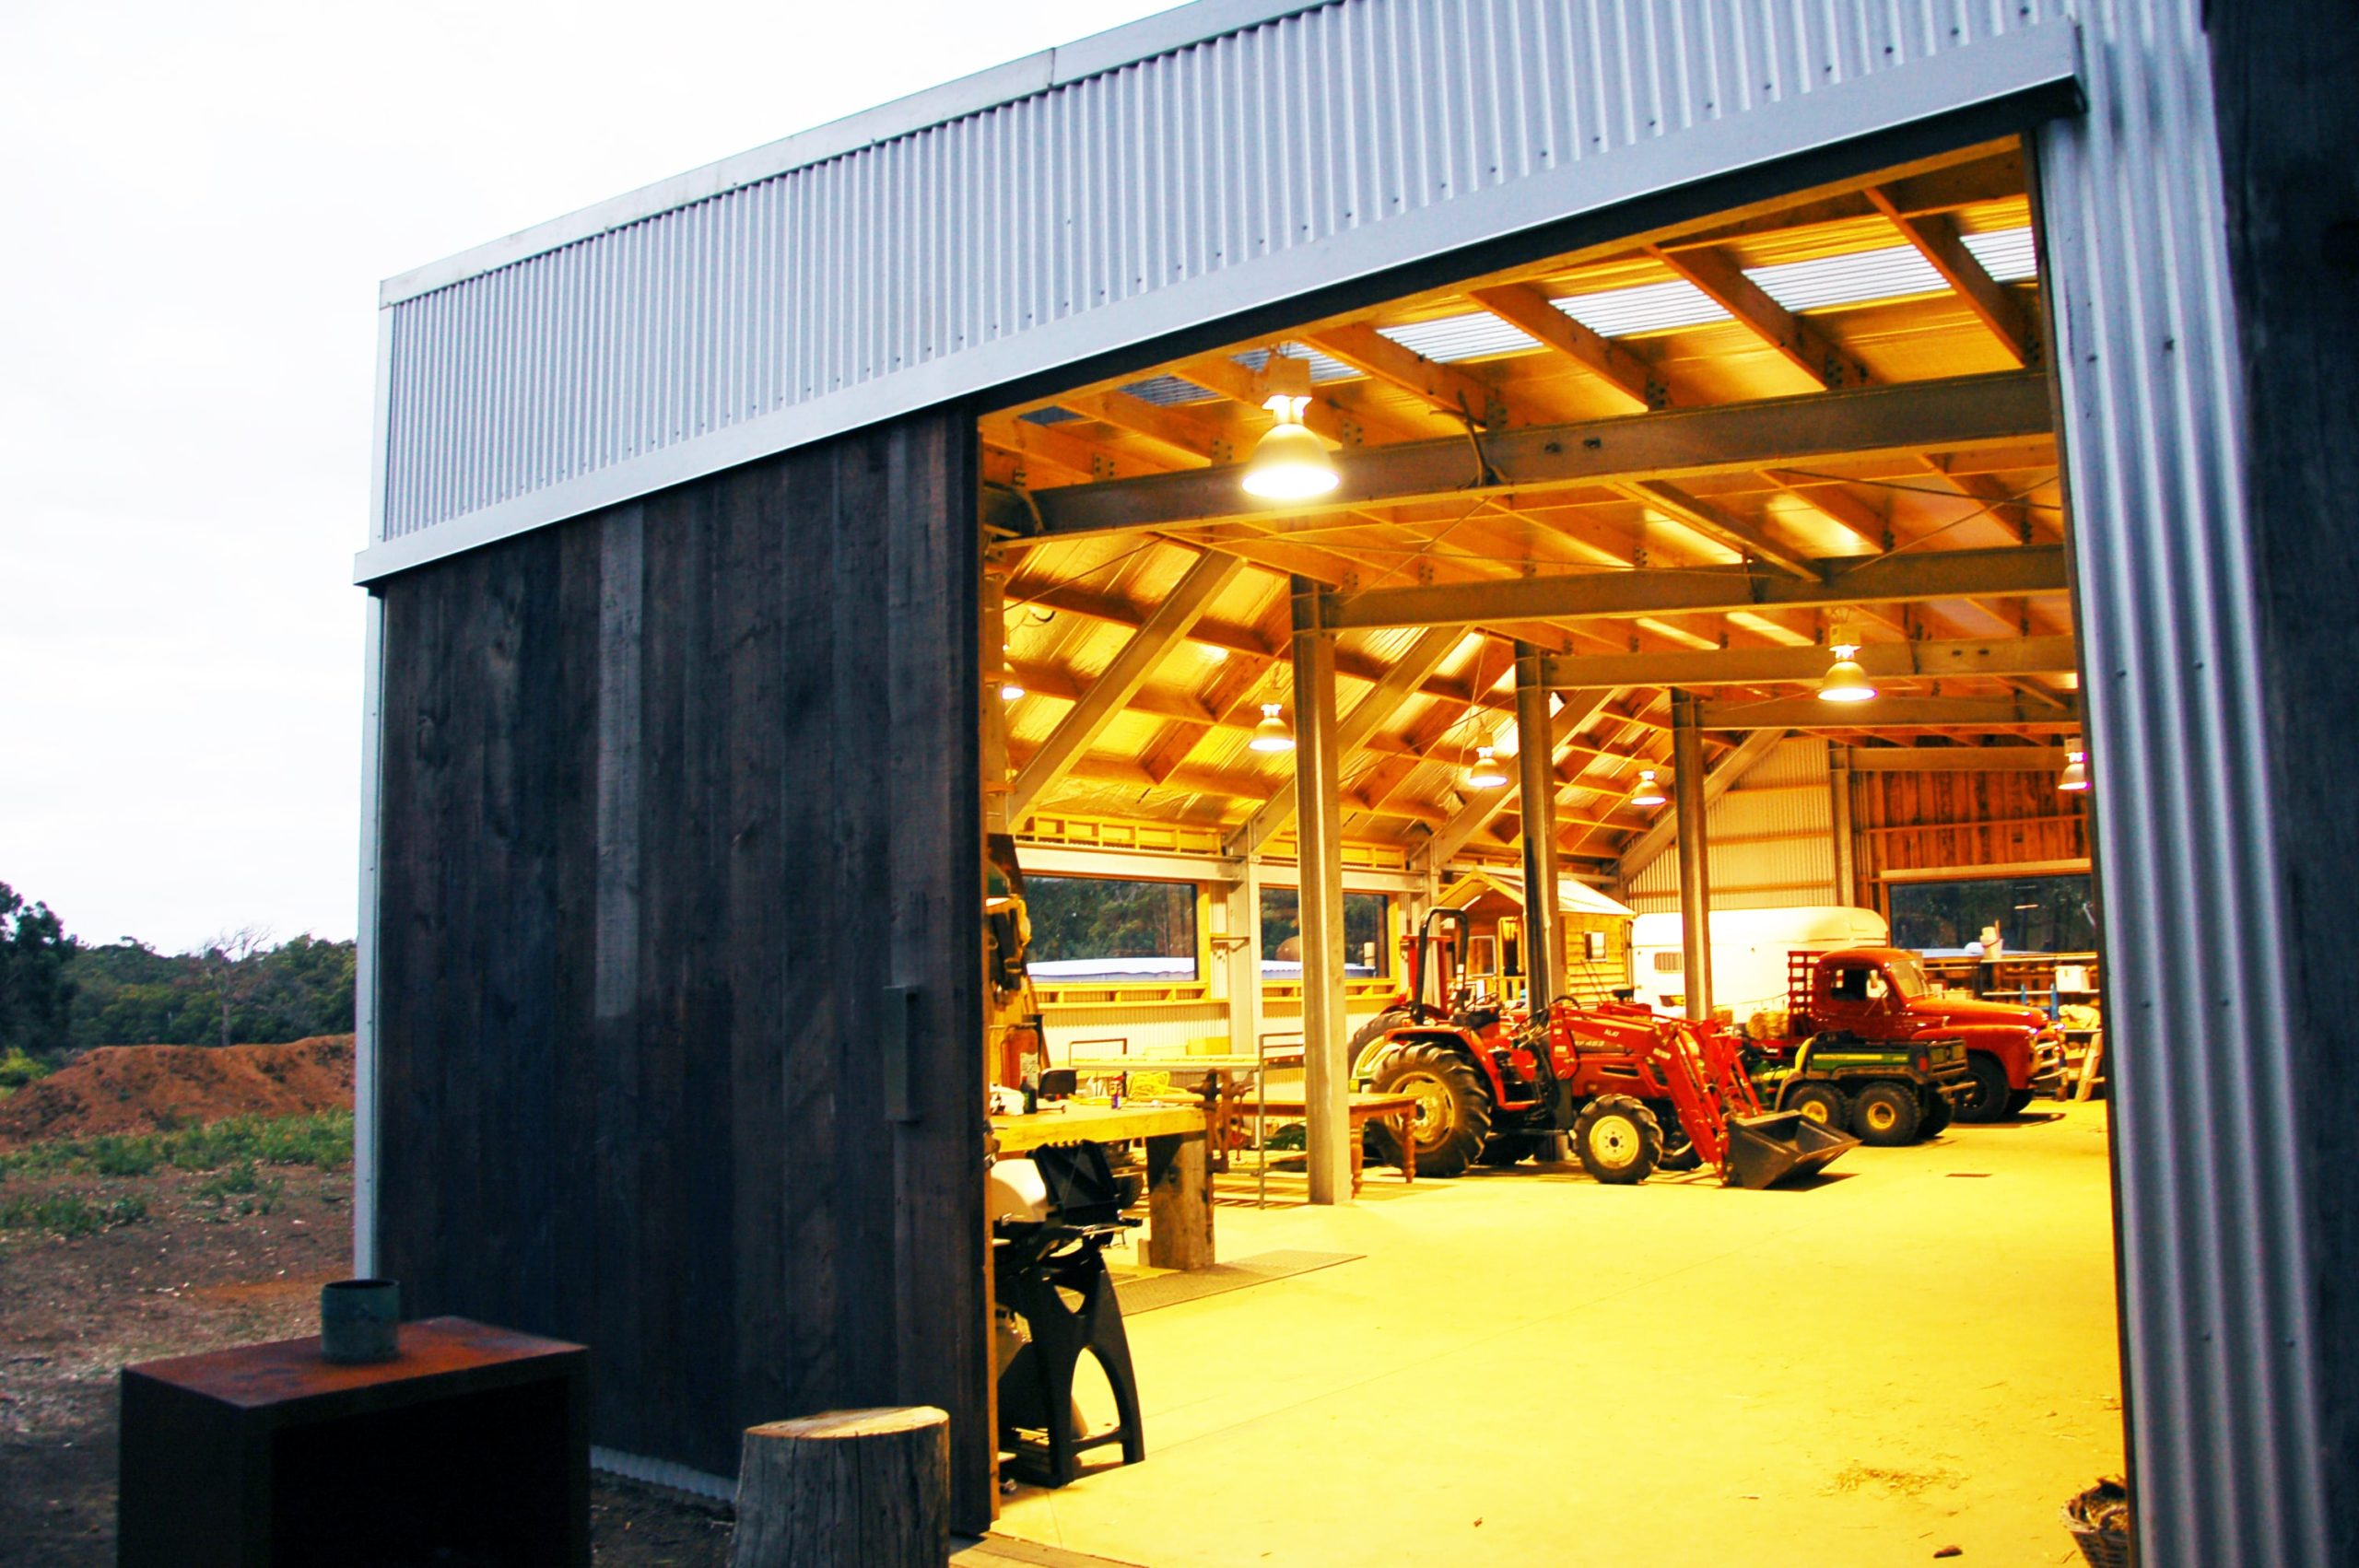 The large shed and garage also has a spacious work area on the side of the parked vehicles. brilliantly lit by the large lighting of the wooden ceiling with exposed beams.